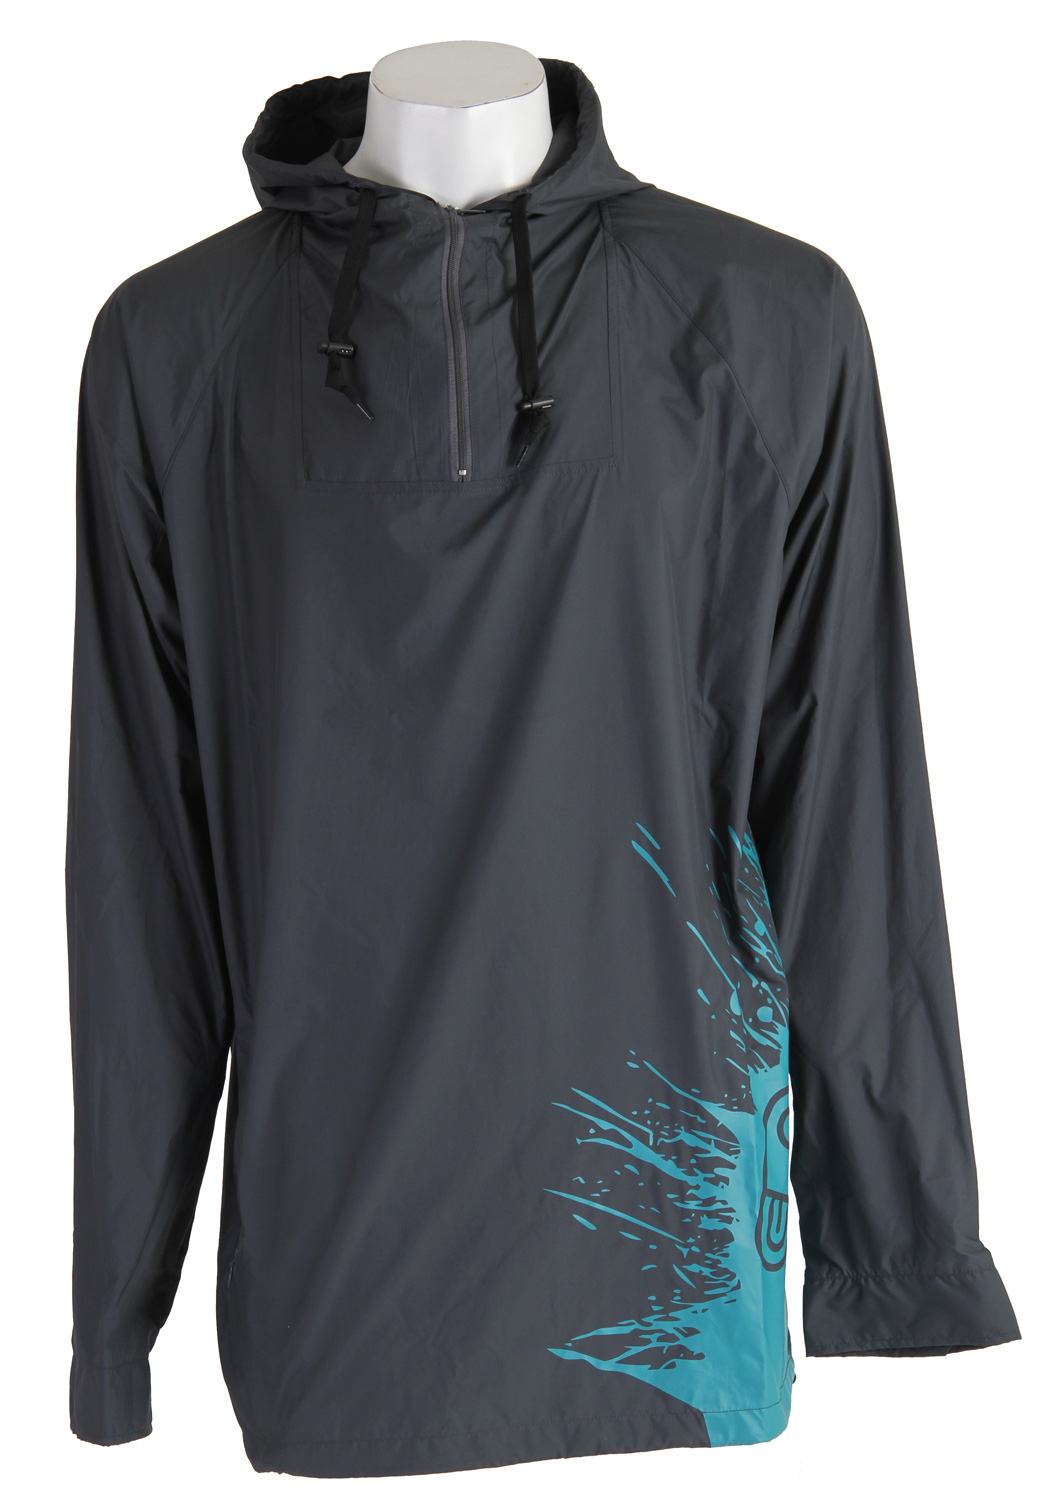 Key Features of the Airblaster Sars Jacket: Light weight Built in face mask Perfect for spring/summer Water-resistant rip stop Classic Airpill splash graphic - $64.95